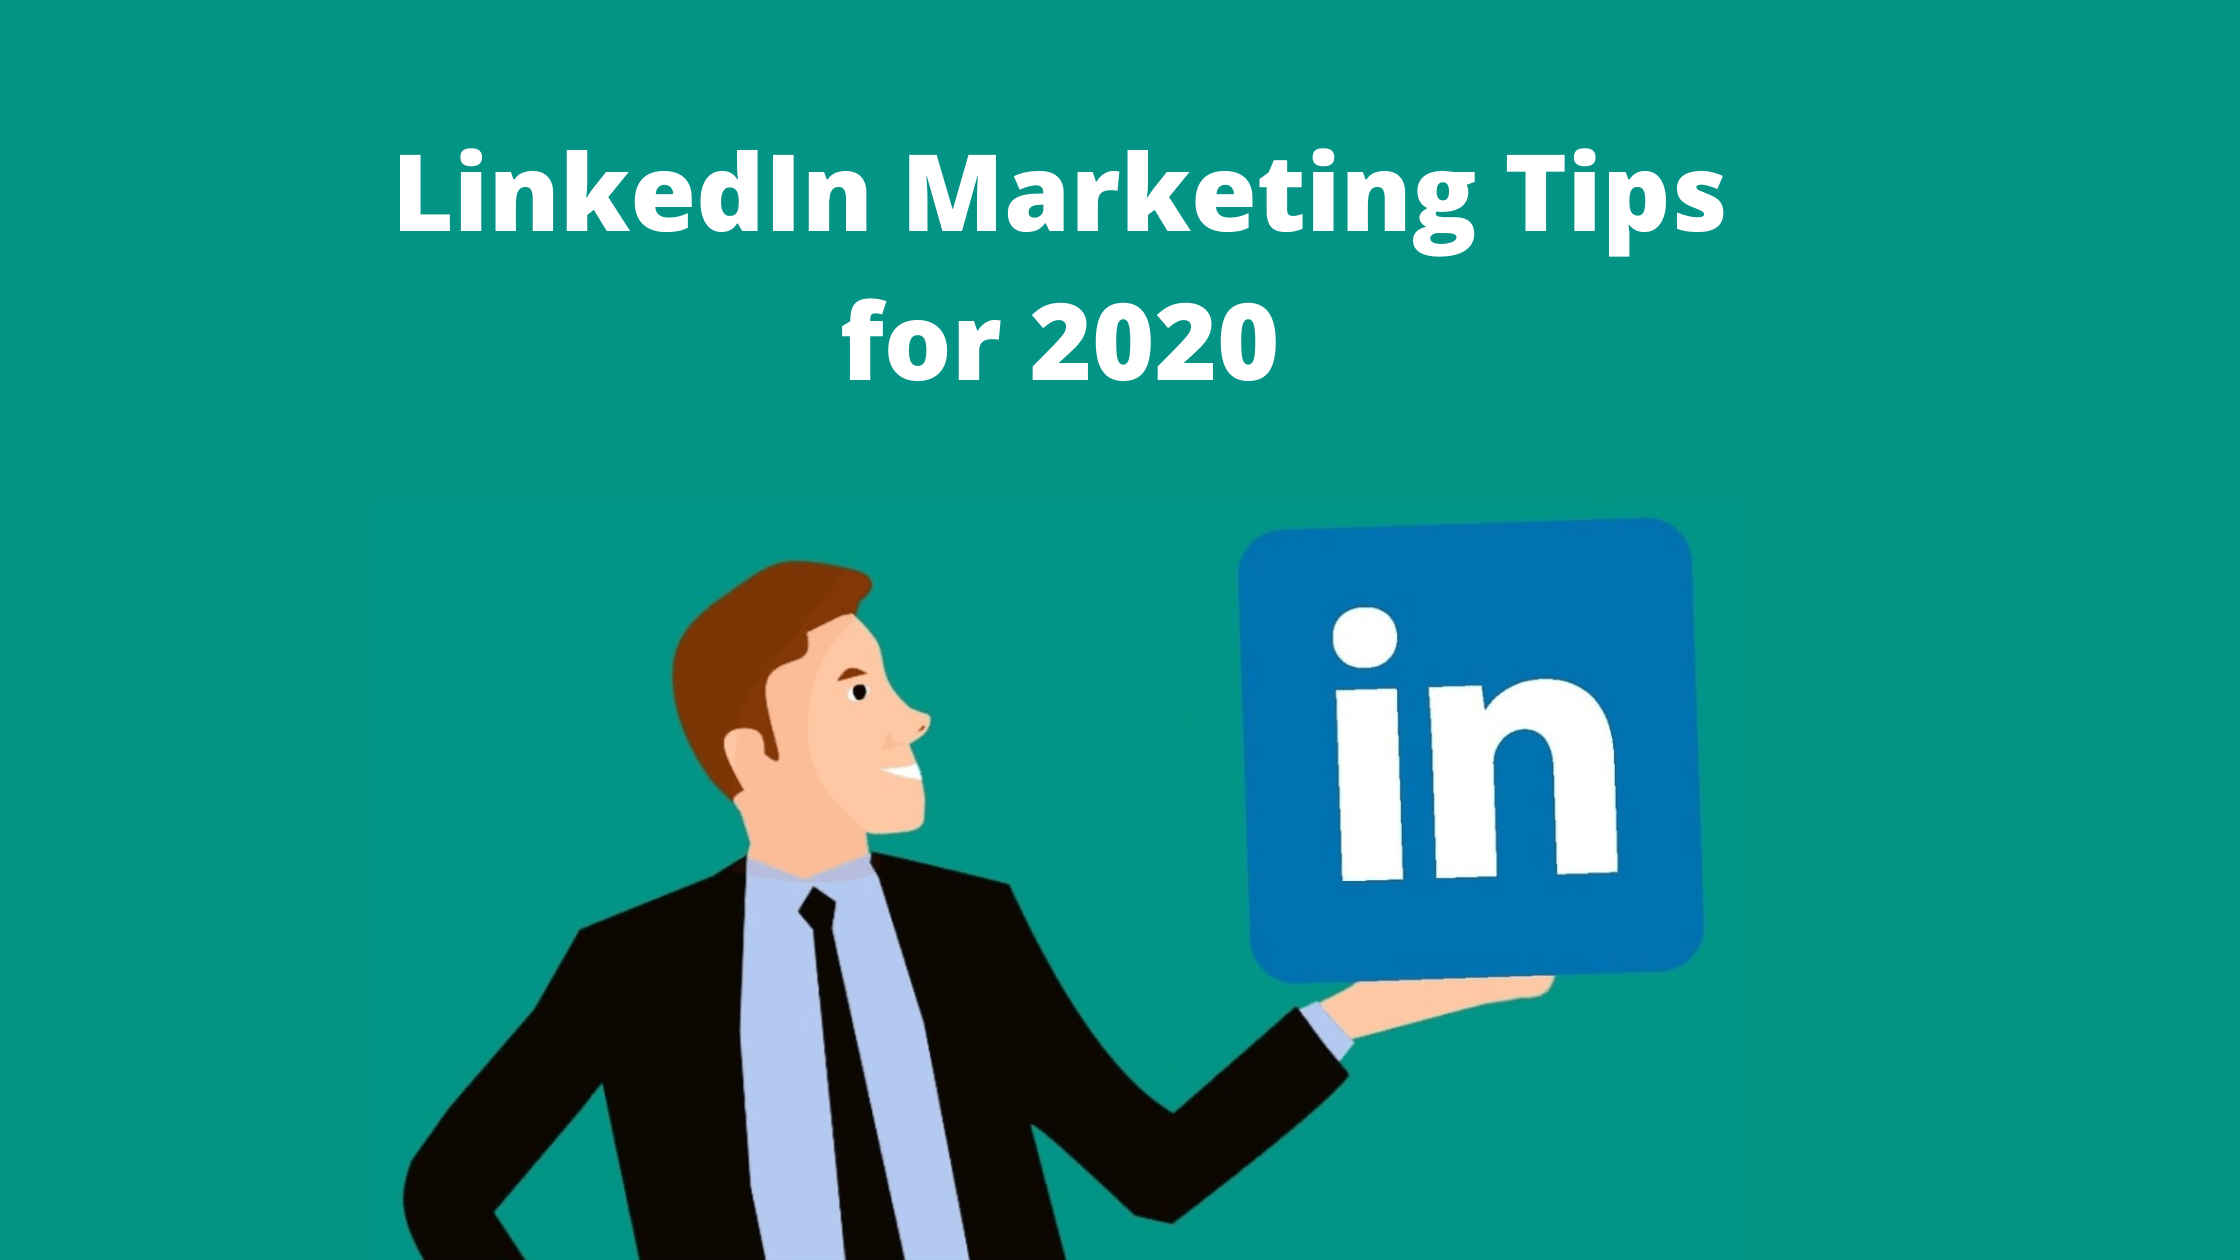 LinkedIn Marketing Tips for 2020